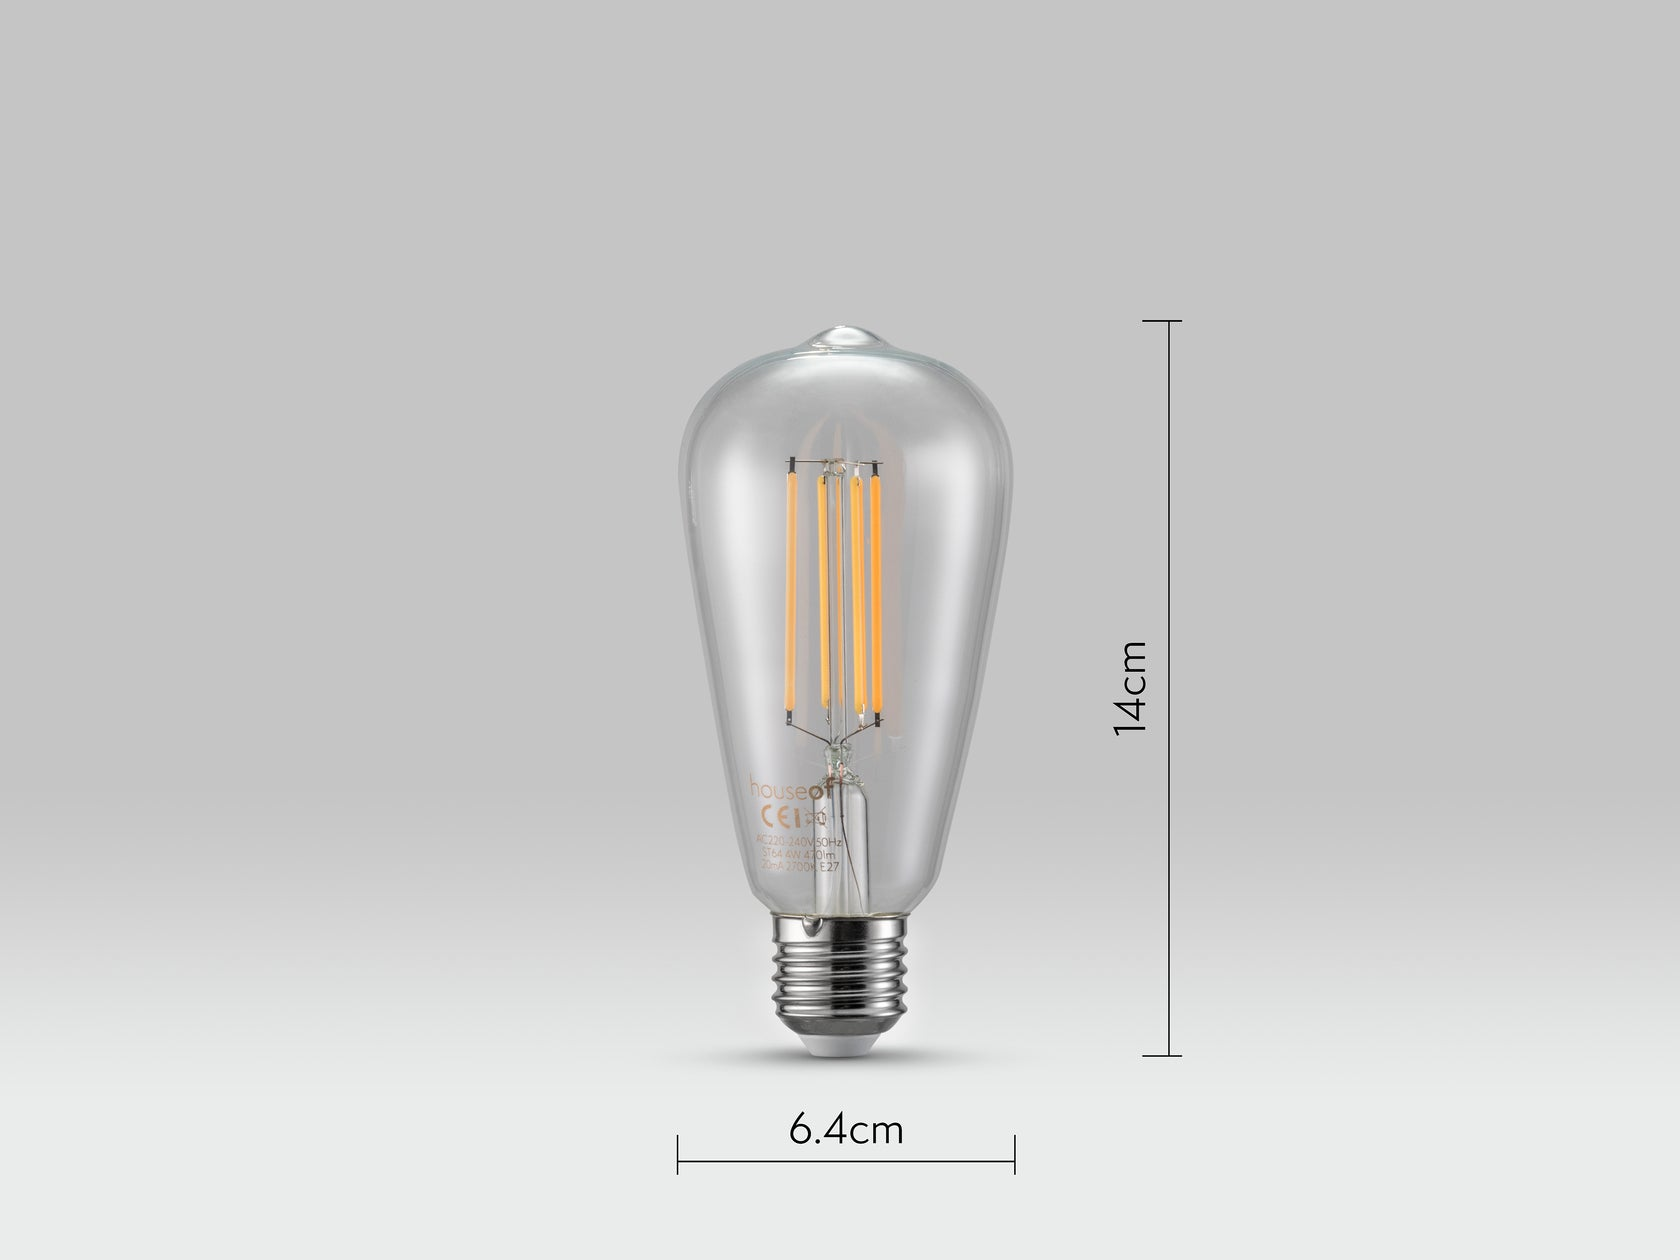 Es led bulb globe 2 | dimensions | houseof.com